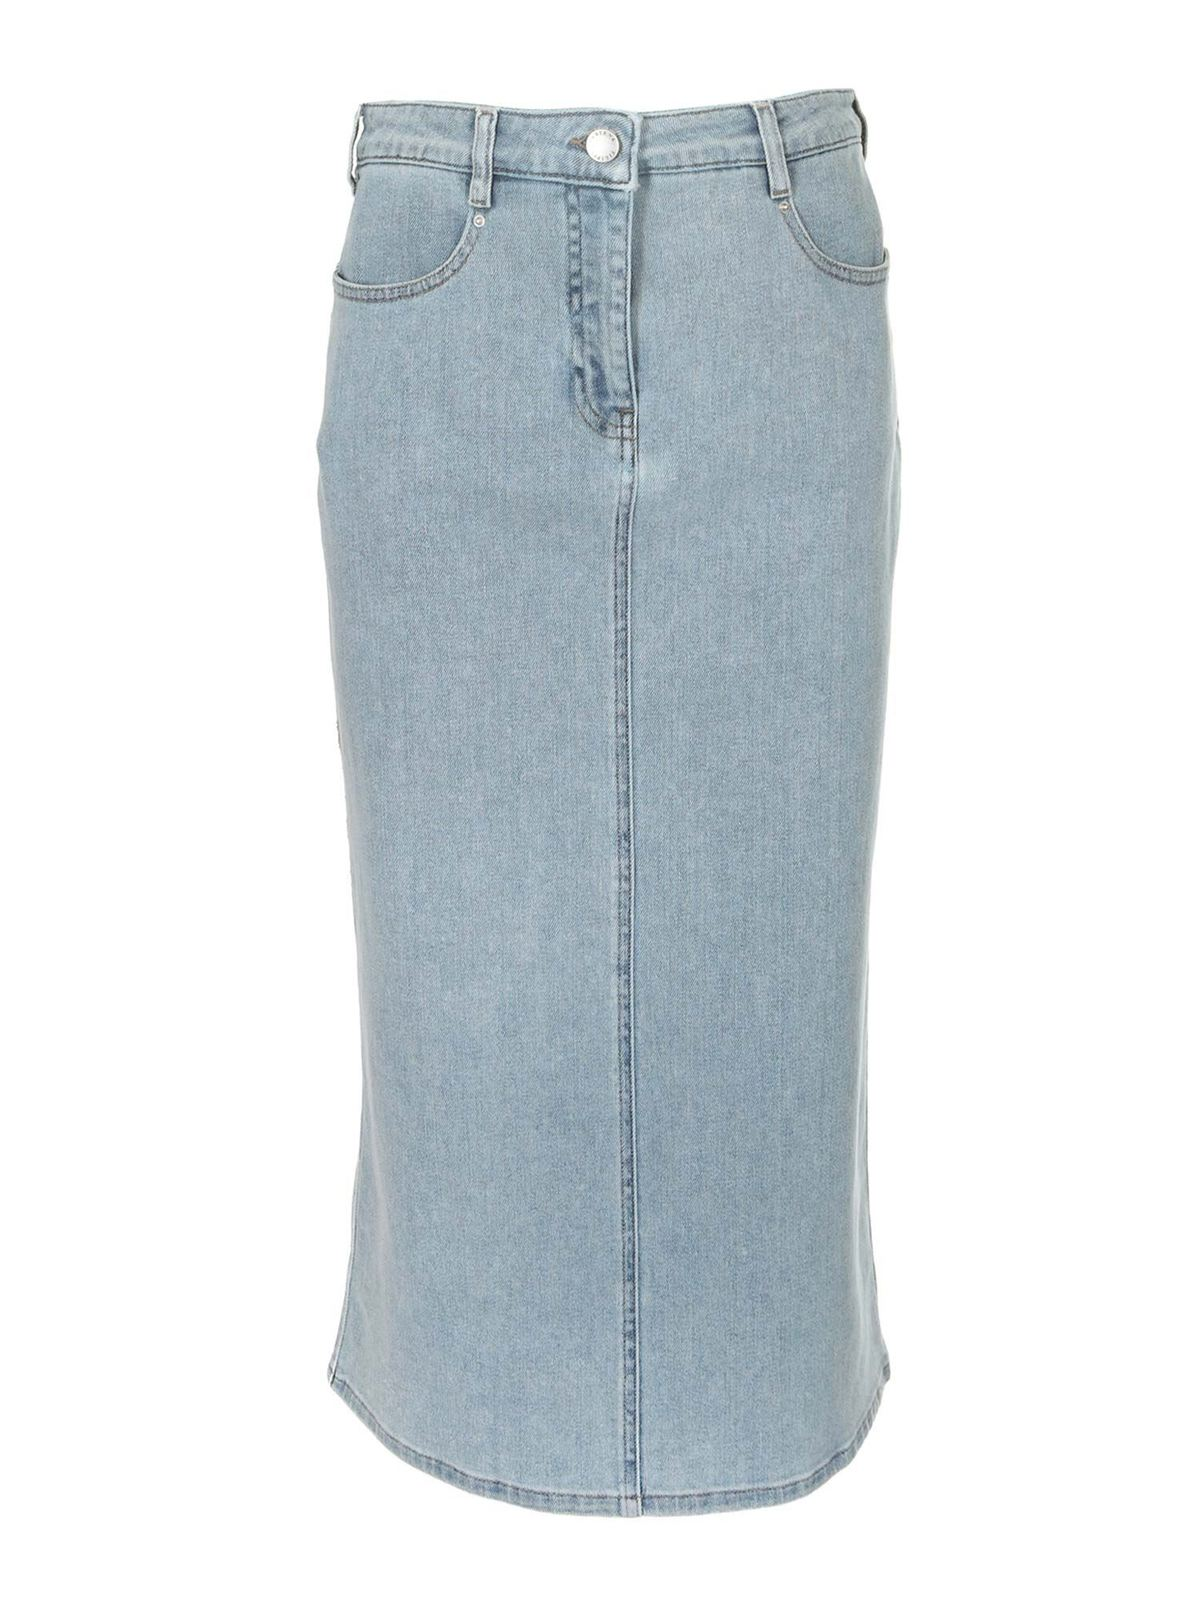 Fabiana Filippi DENIM SKIRT IN LIGHT BLUE